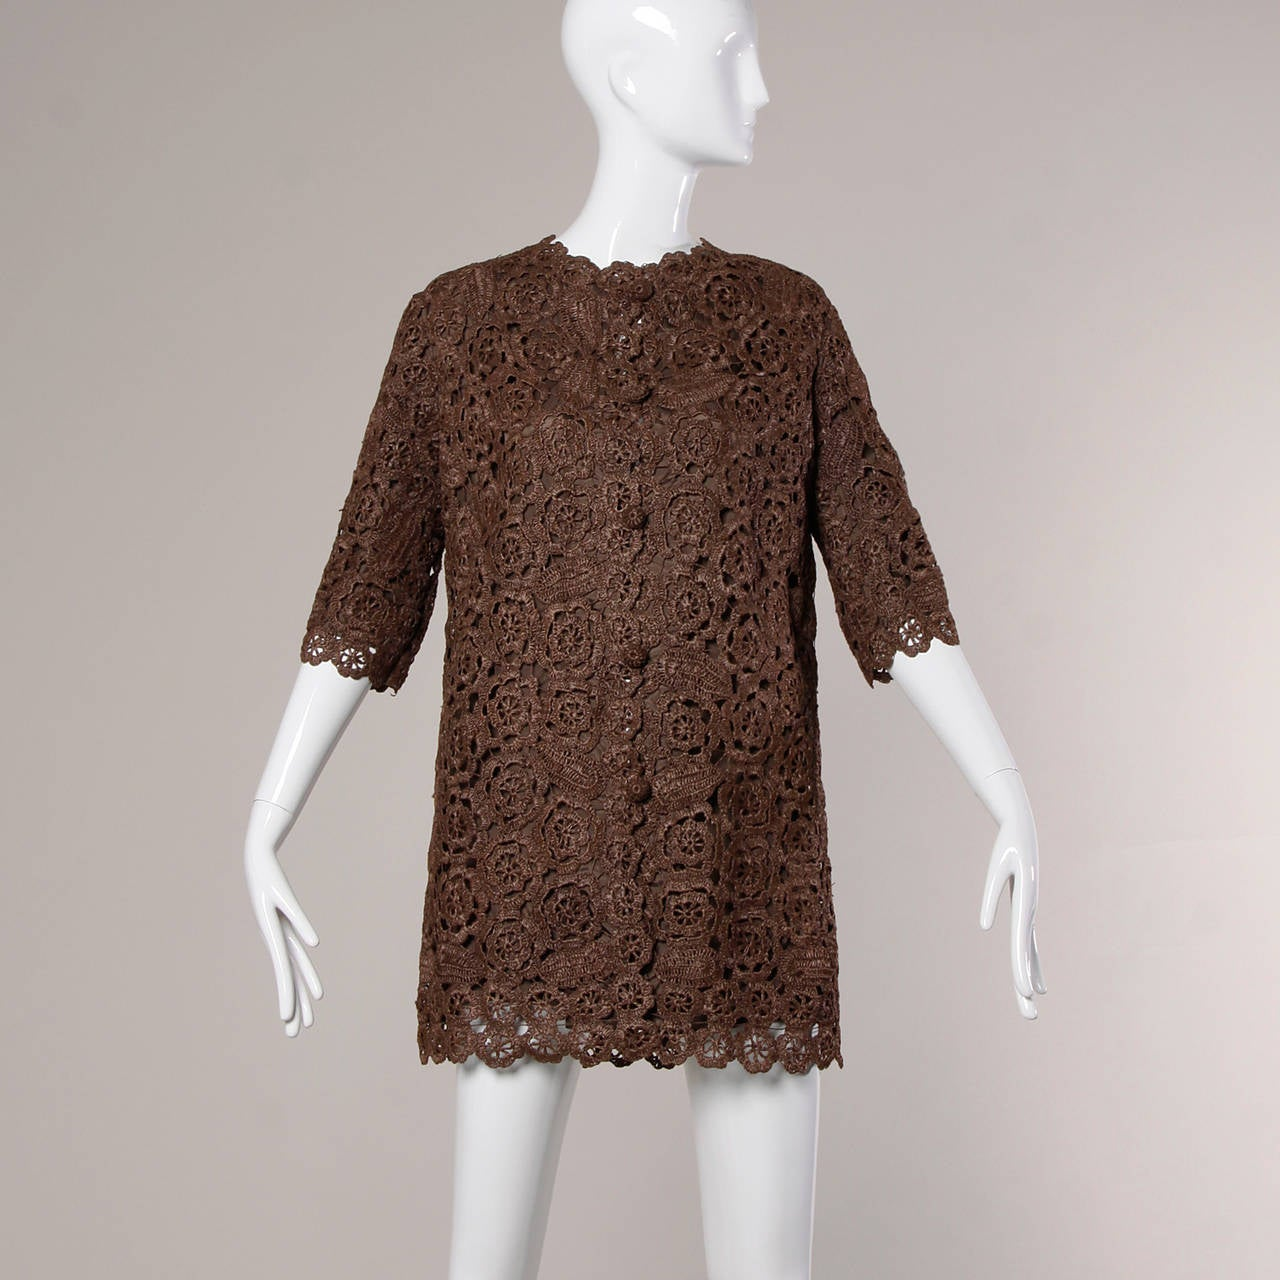 Hand crocheted brown raffia coat or jacket with a scalloped design and matching buttons.